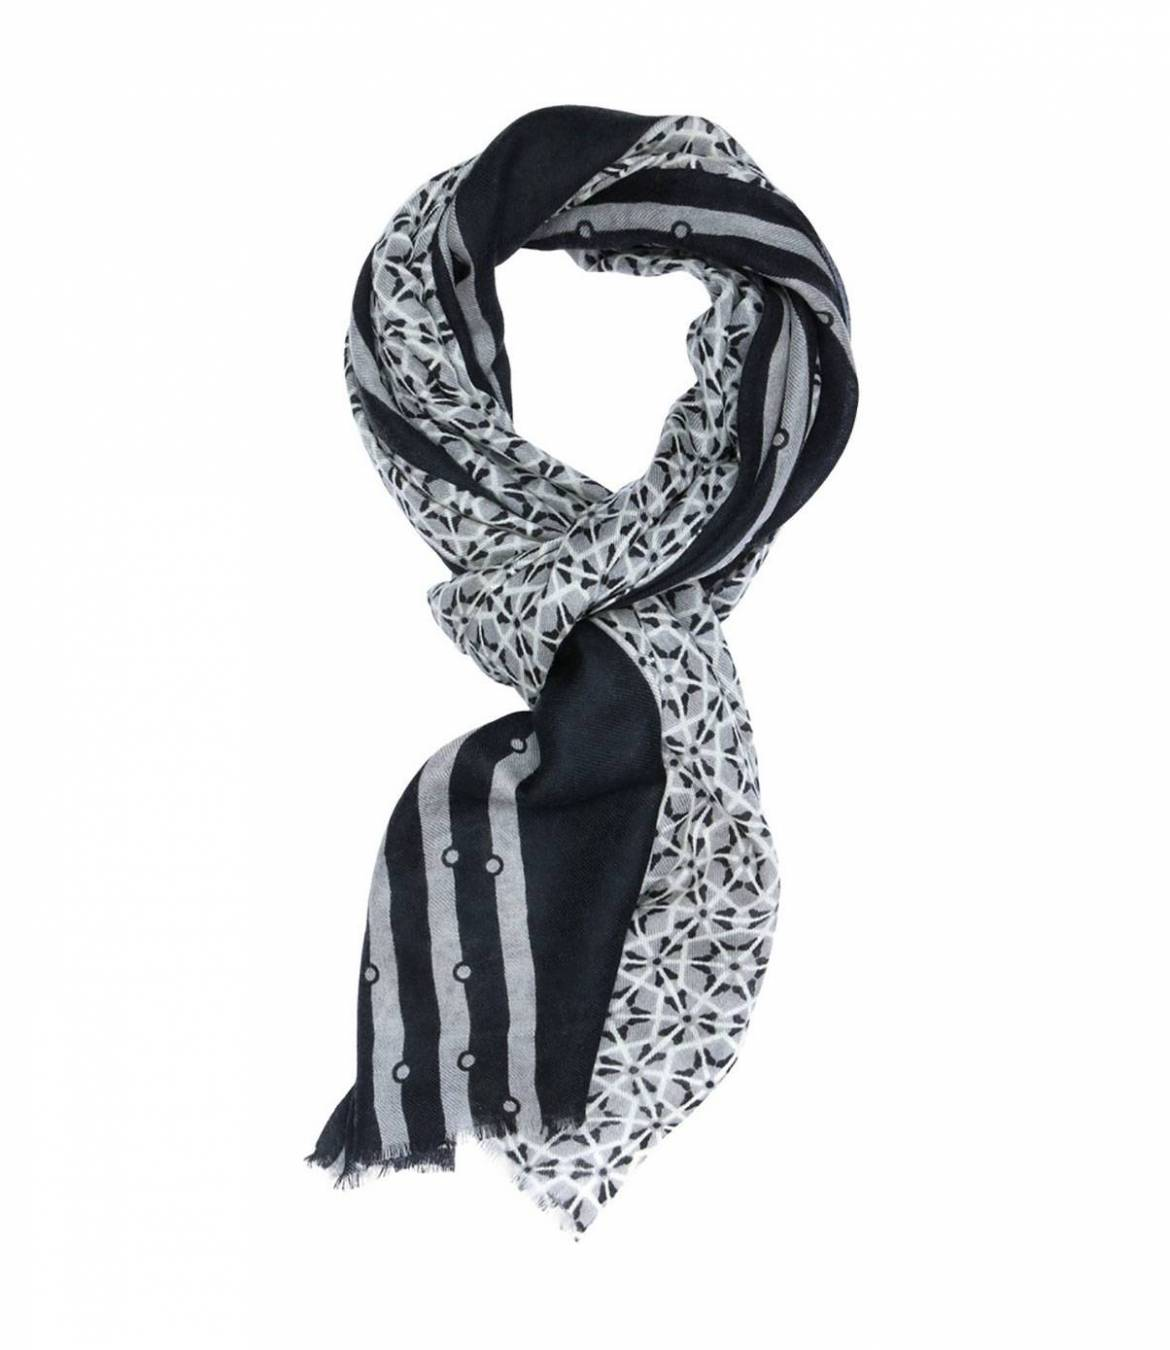 SUGAR Men's Wool Scarf 80x200 cm Storiatipic - 1